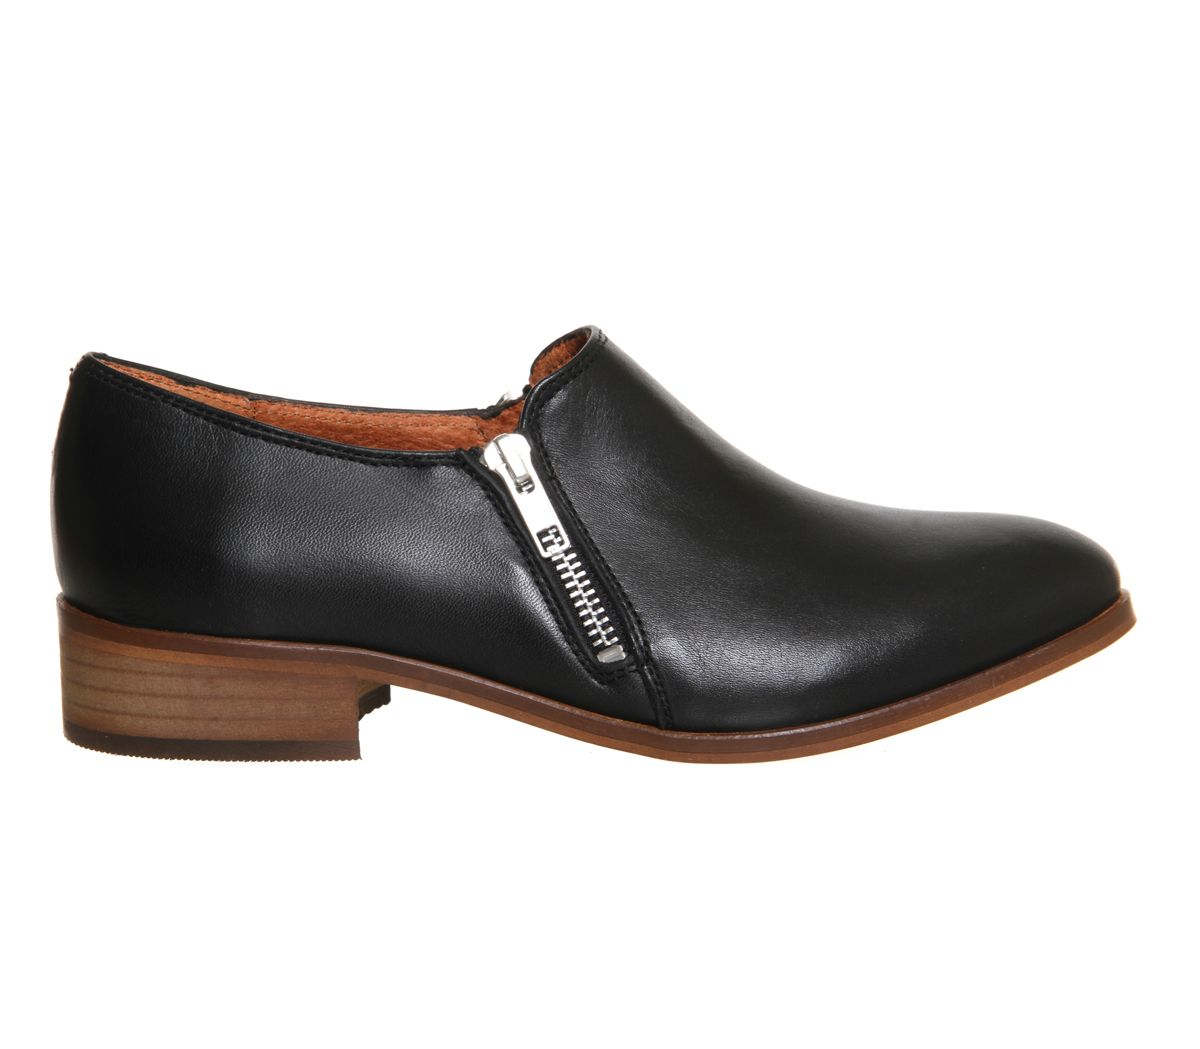 office side zip flats in black black leather lyst